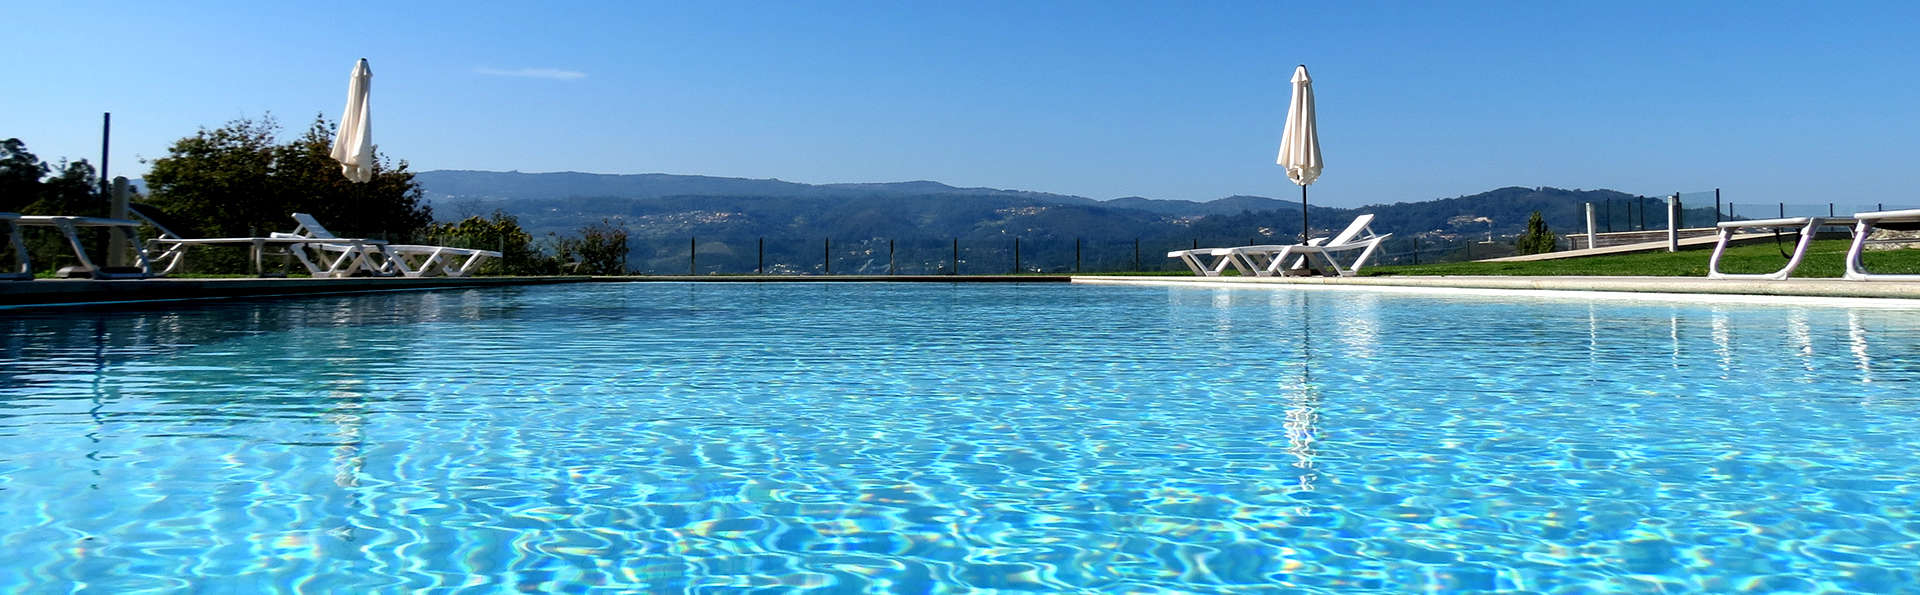 Tempus Hotel & Spa - Edit_Pool3.jpg